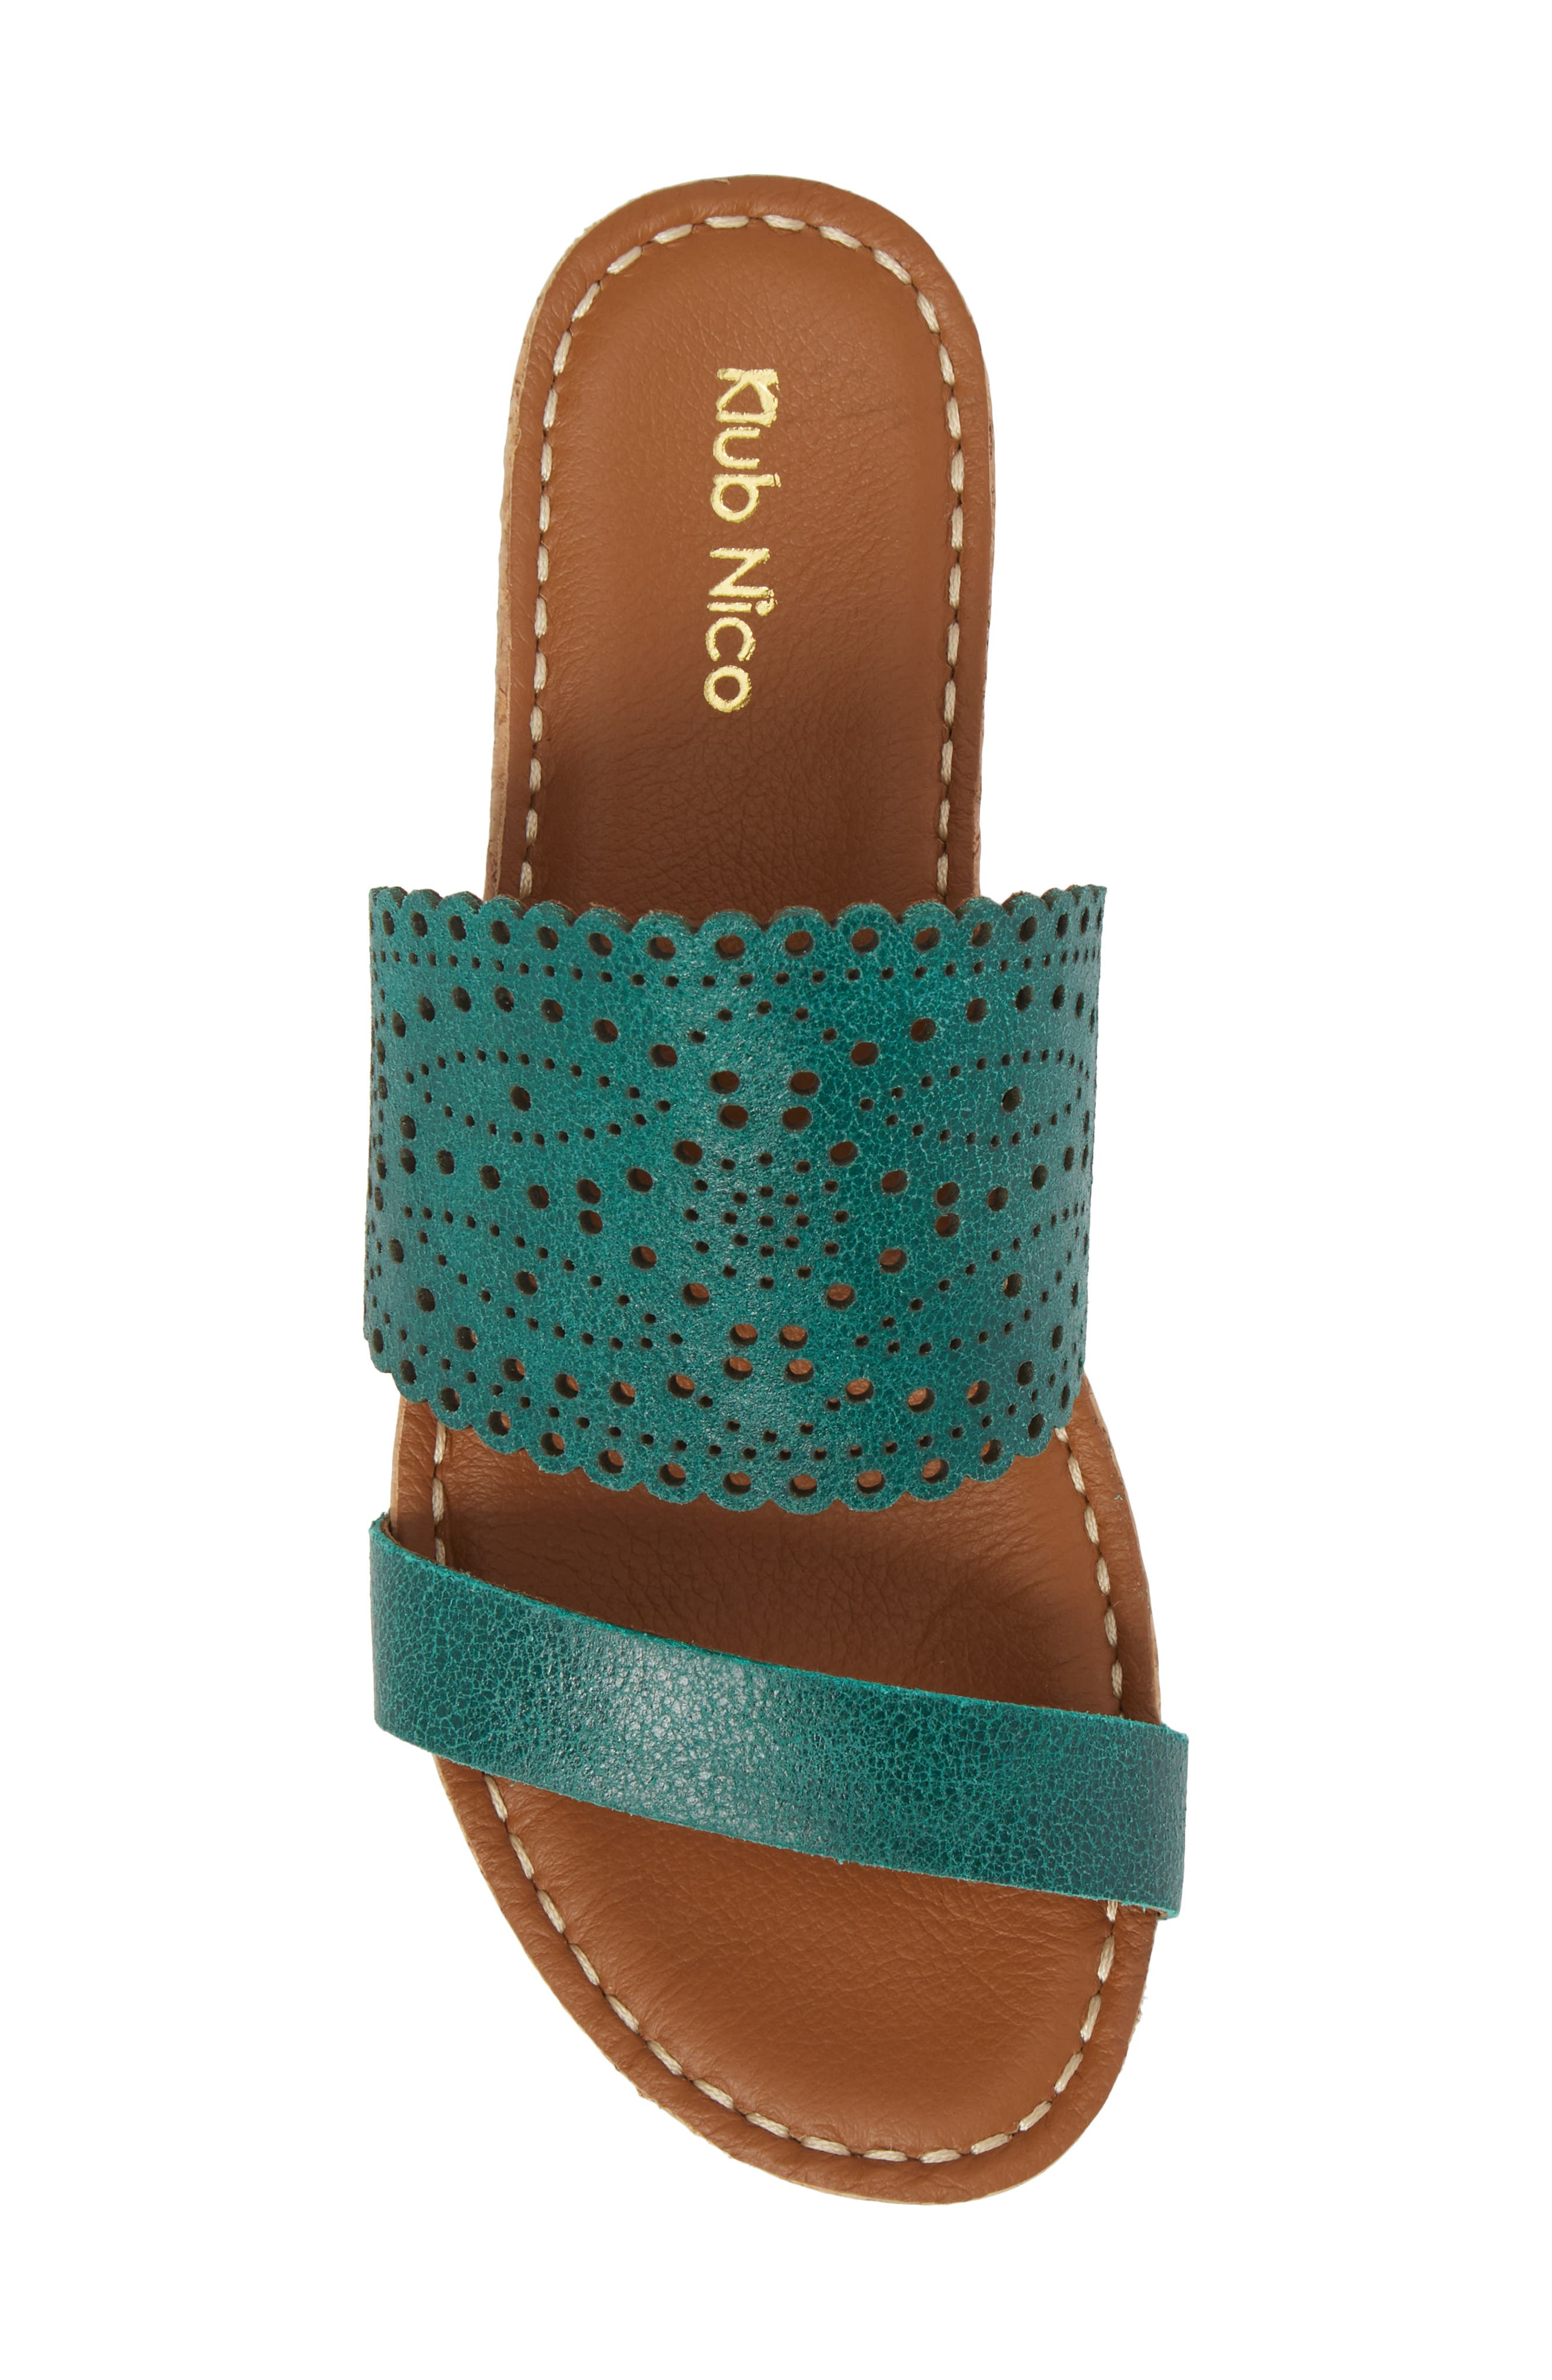 Ginette Perforated Slide Sandal,                             Alternate thumbnail 5, color,                             Ivy Leather